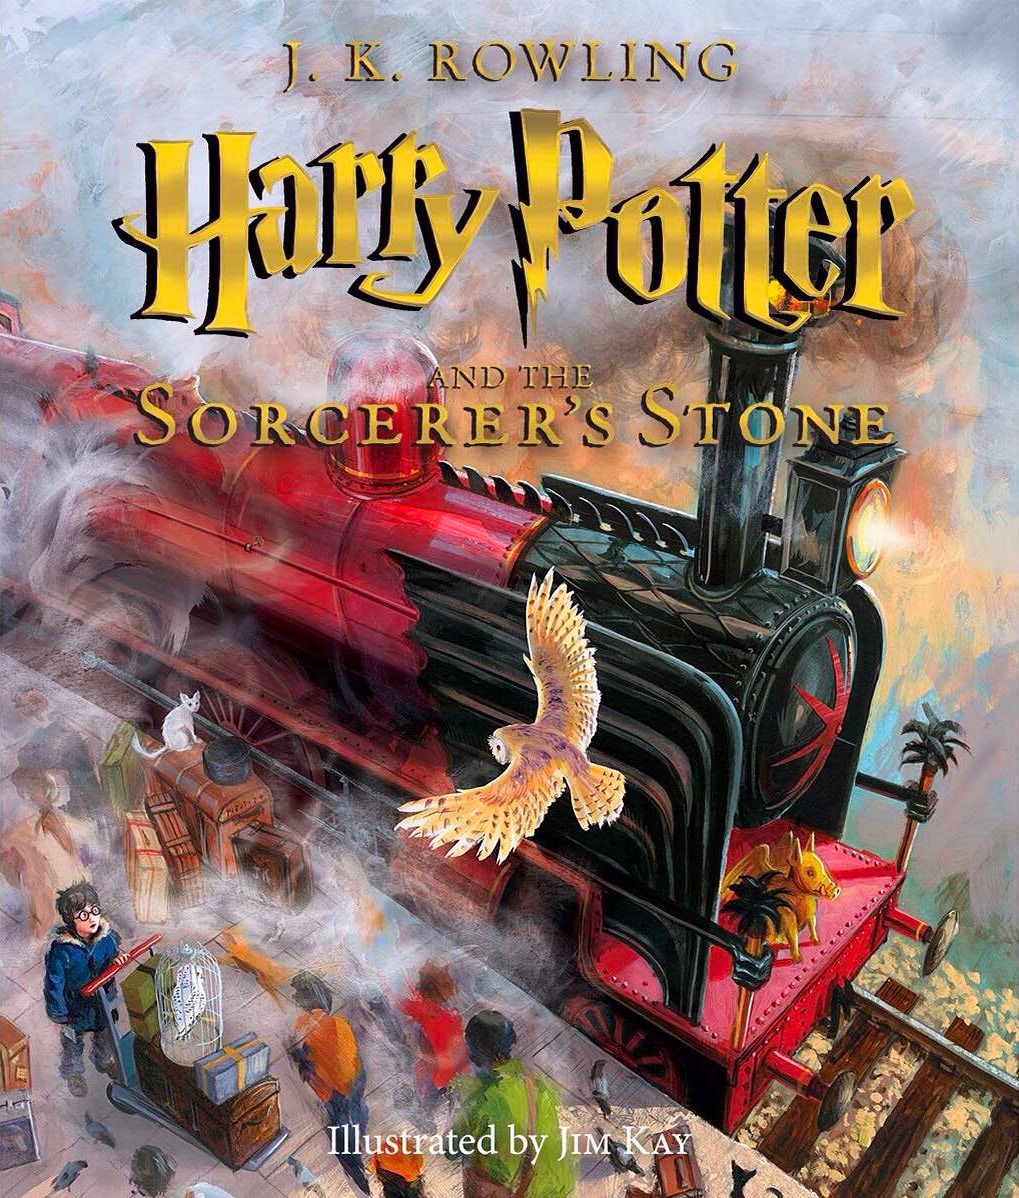 Sorcerer's Stone illustrated edition